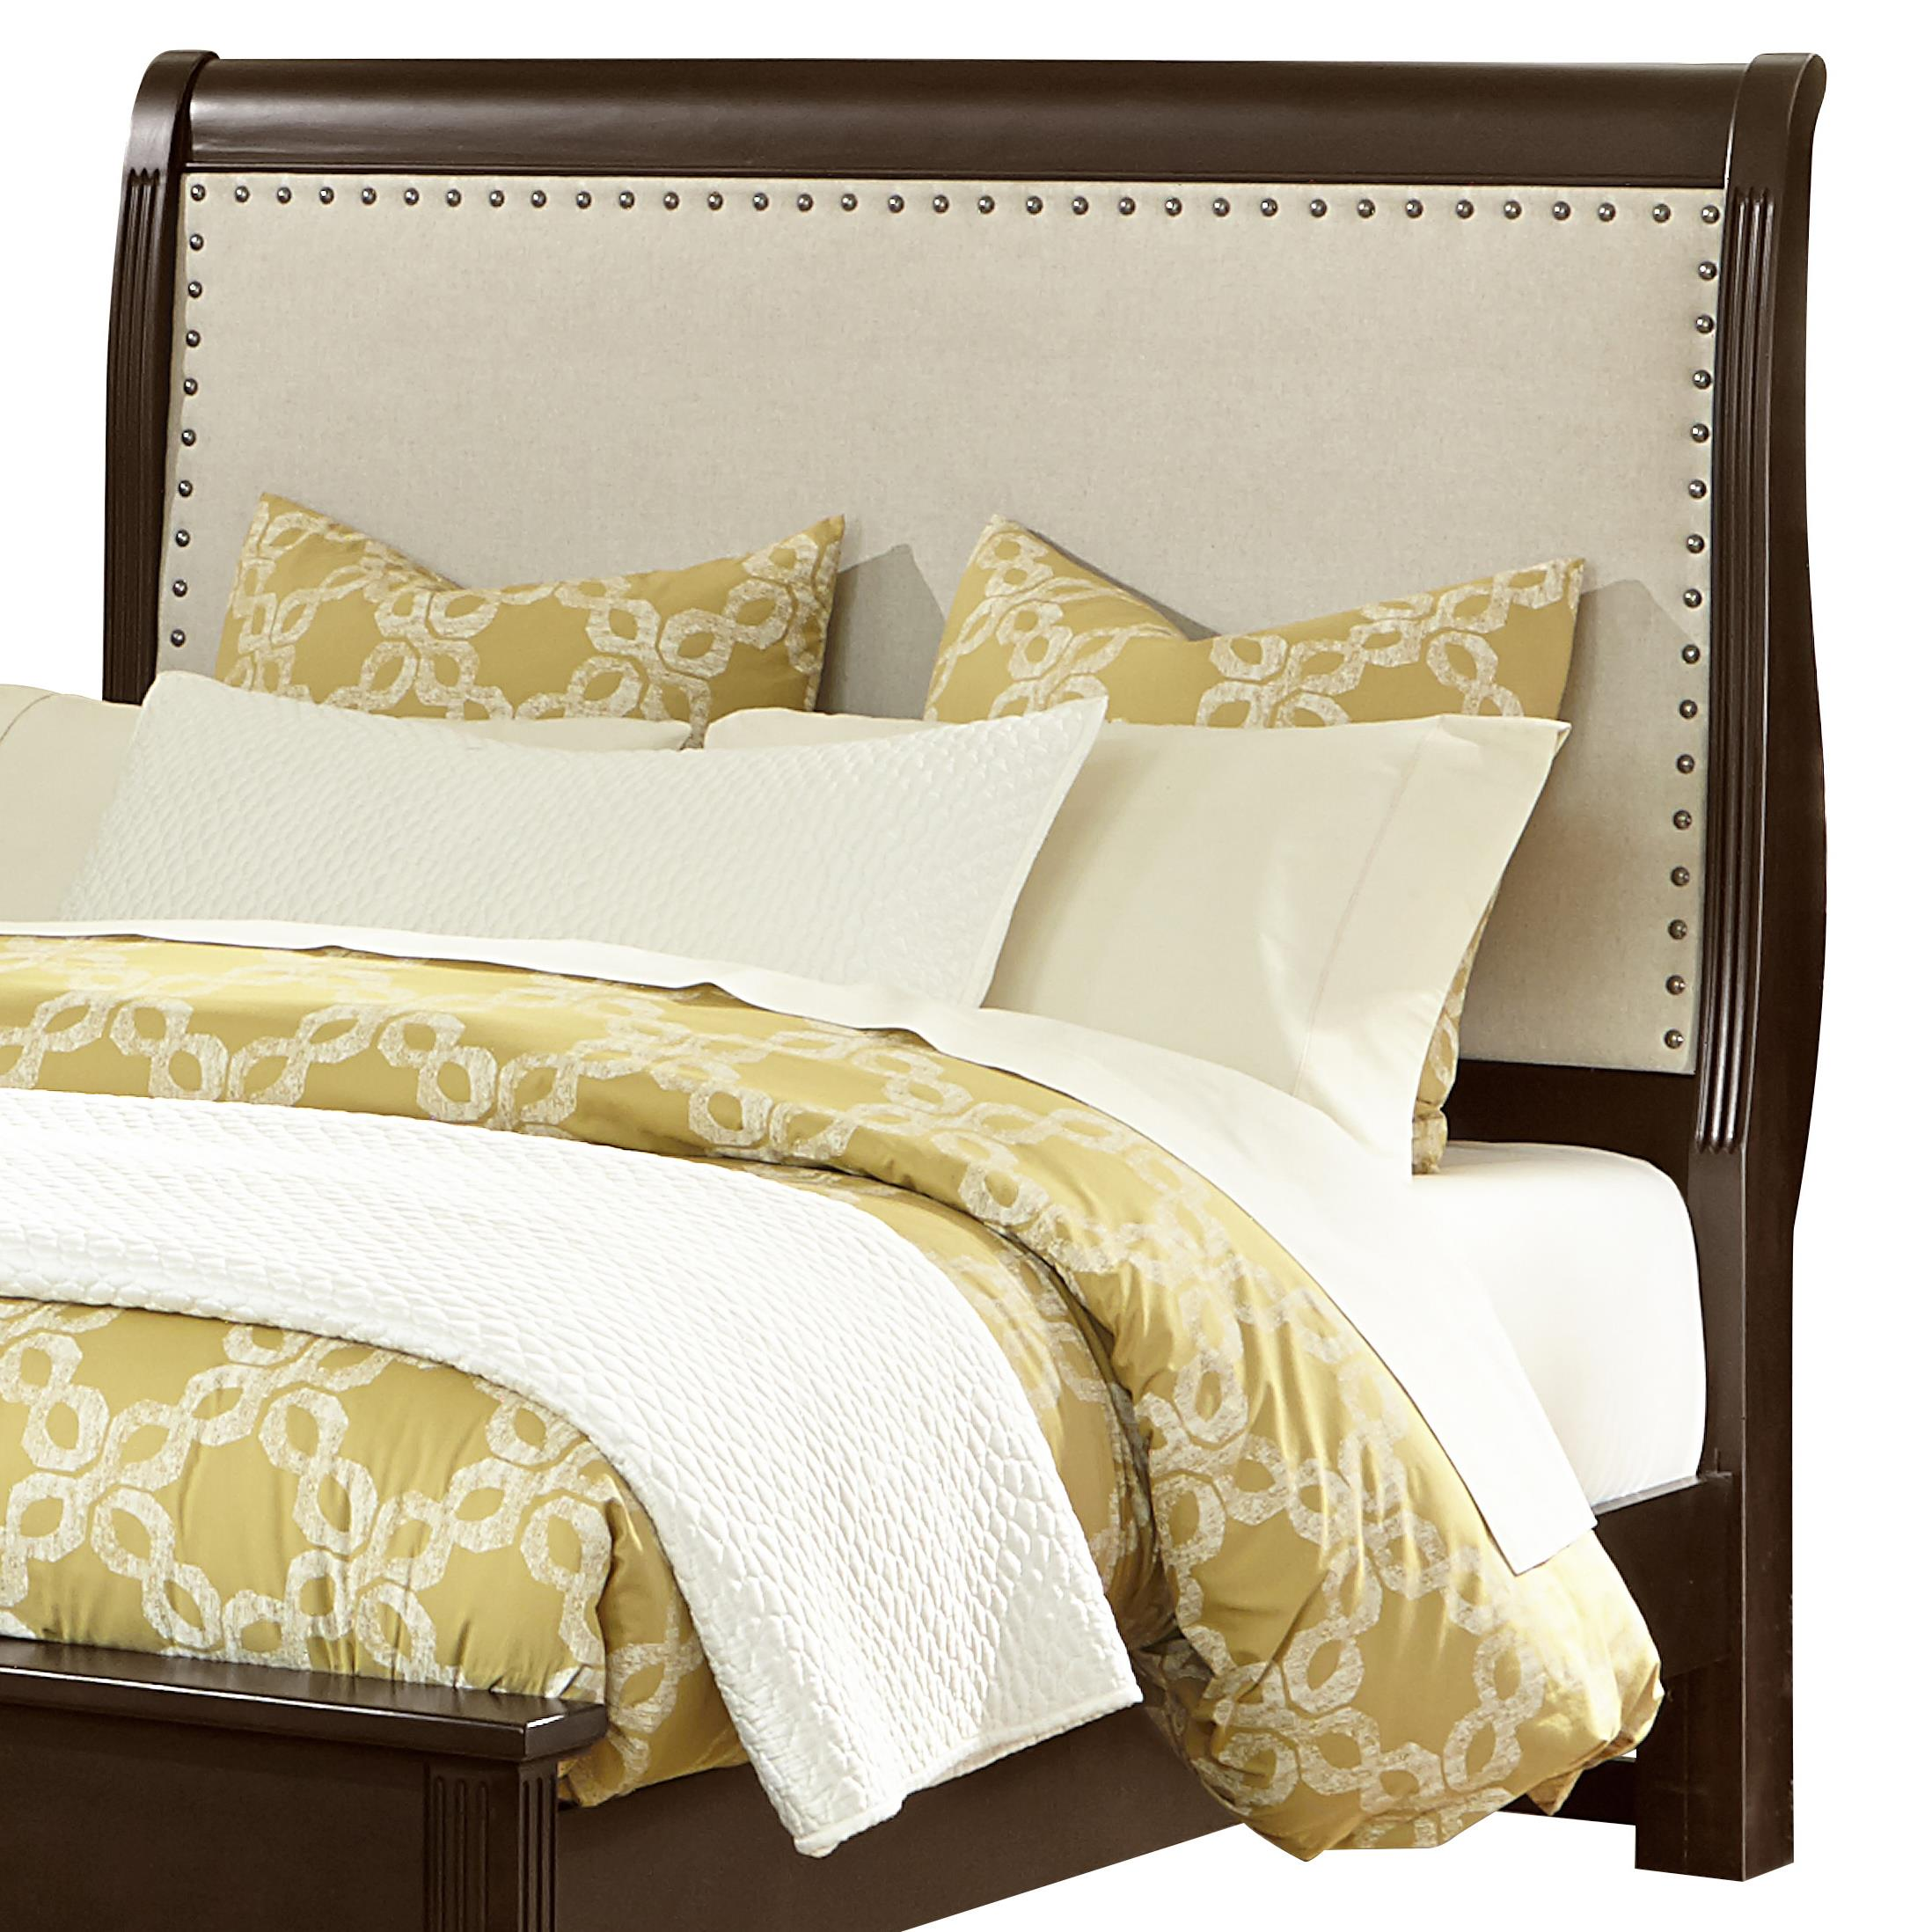 Vaughan Bassett French Market Full Upholstered Headboard (Linen) - Item Number: 380-333